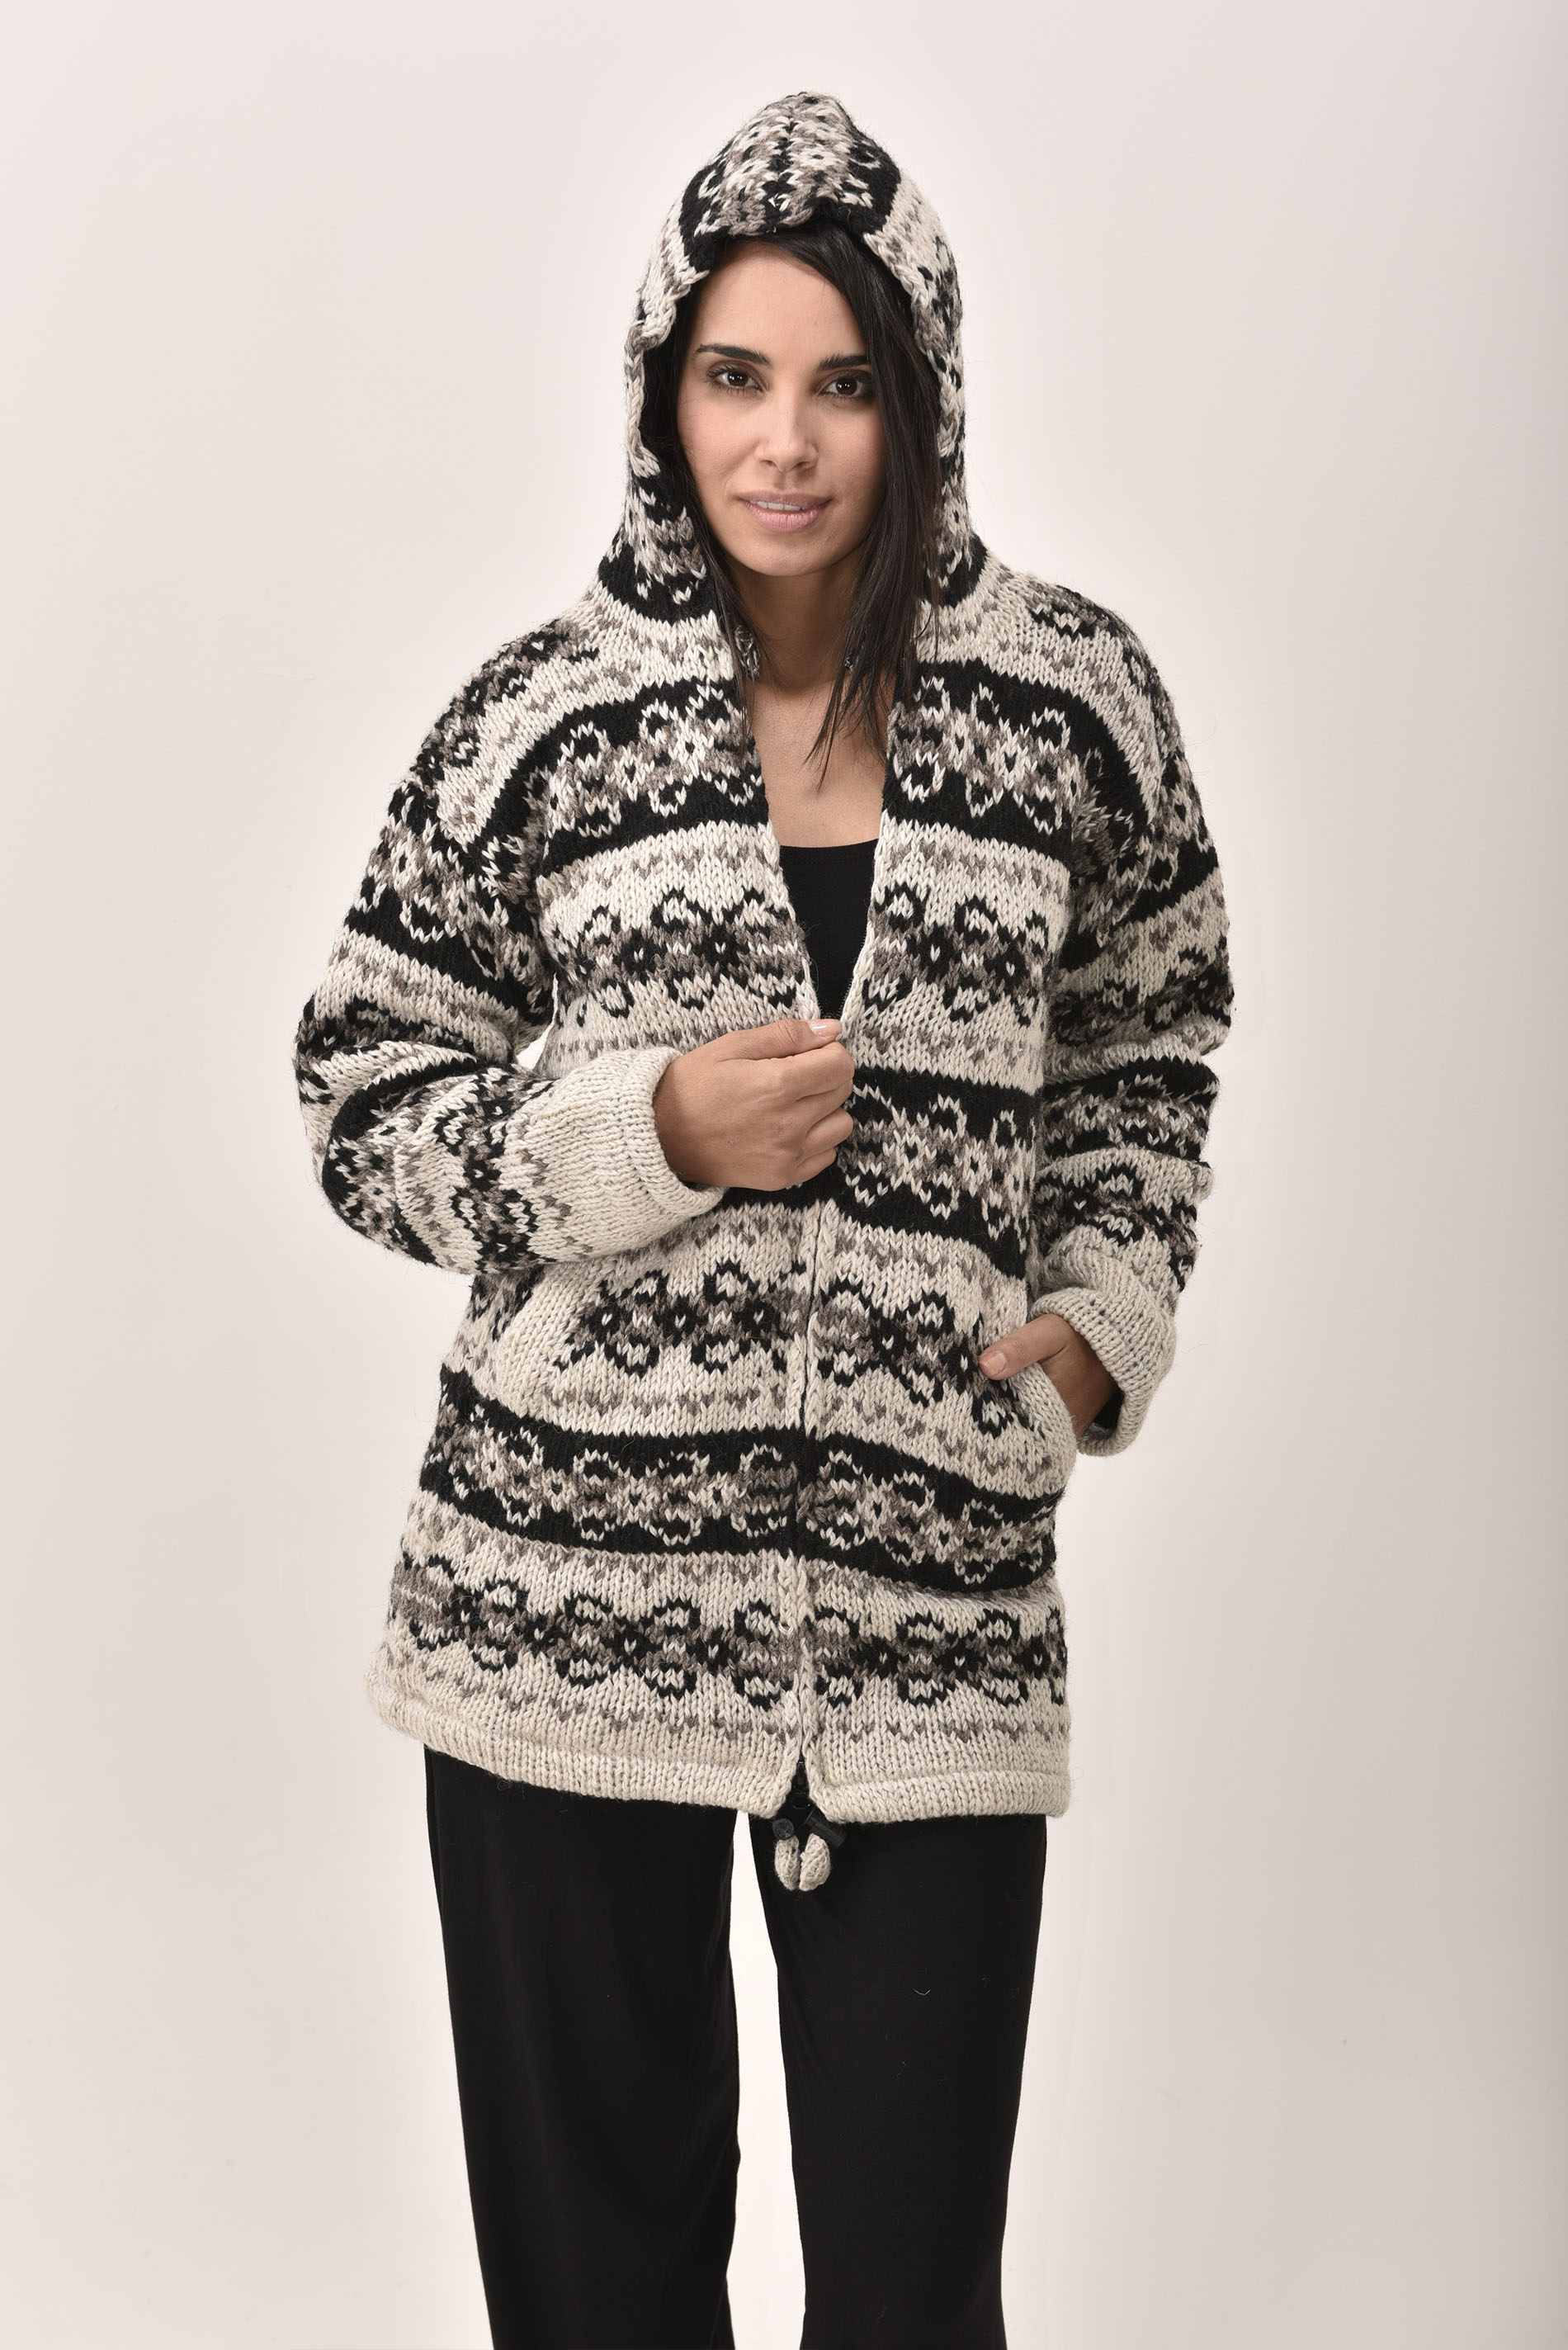 Himalayan Mountain Jacket Long Length Vintage Pattern, Black